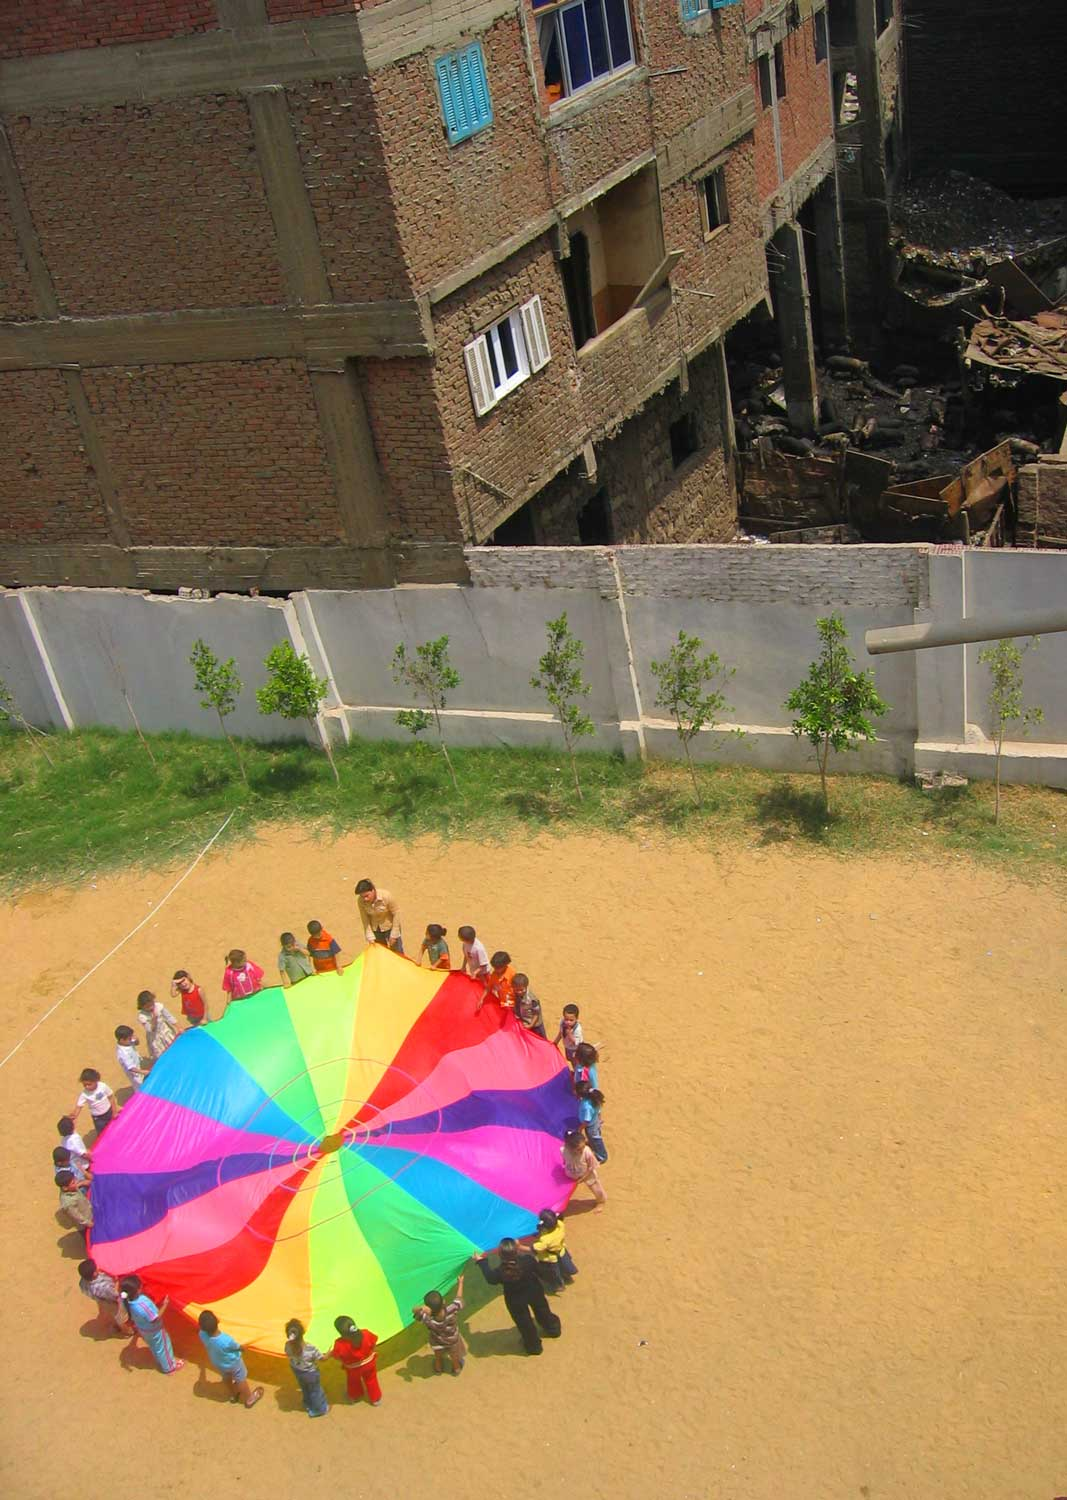 Children play in the courtyard of an elementary school located in the midst of one of Cairo's largest slums.